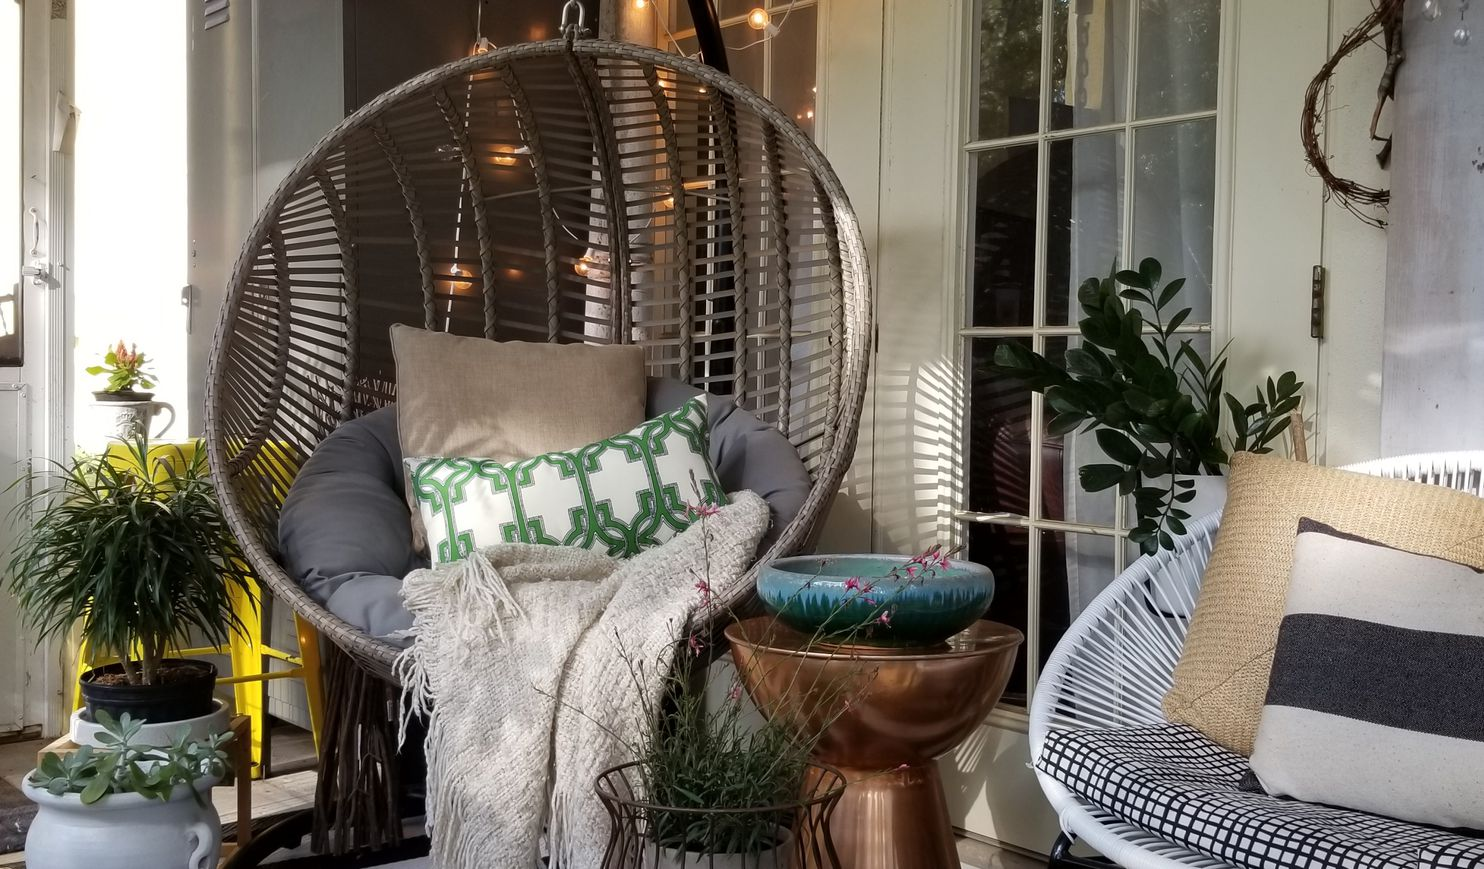 patio hanging egg chair movie theater chairs for sale were everywhere this summer here s how to get the blogger decorator and product stylist holli rodrigues decorated her with a shared it on blog bees n burlap